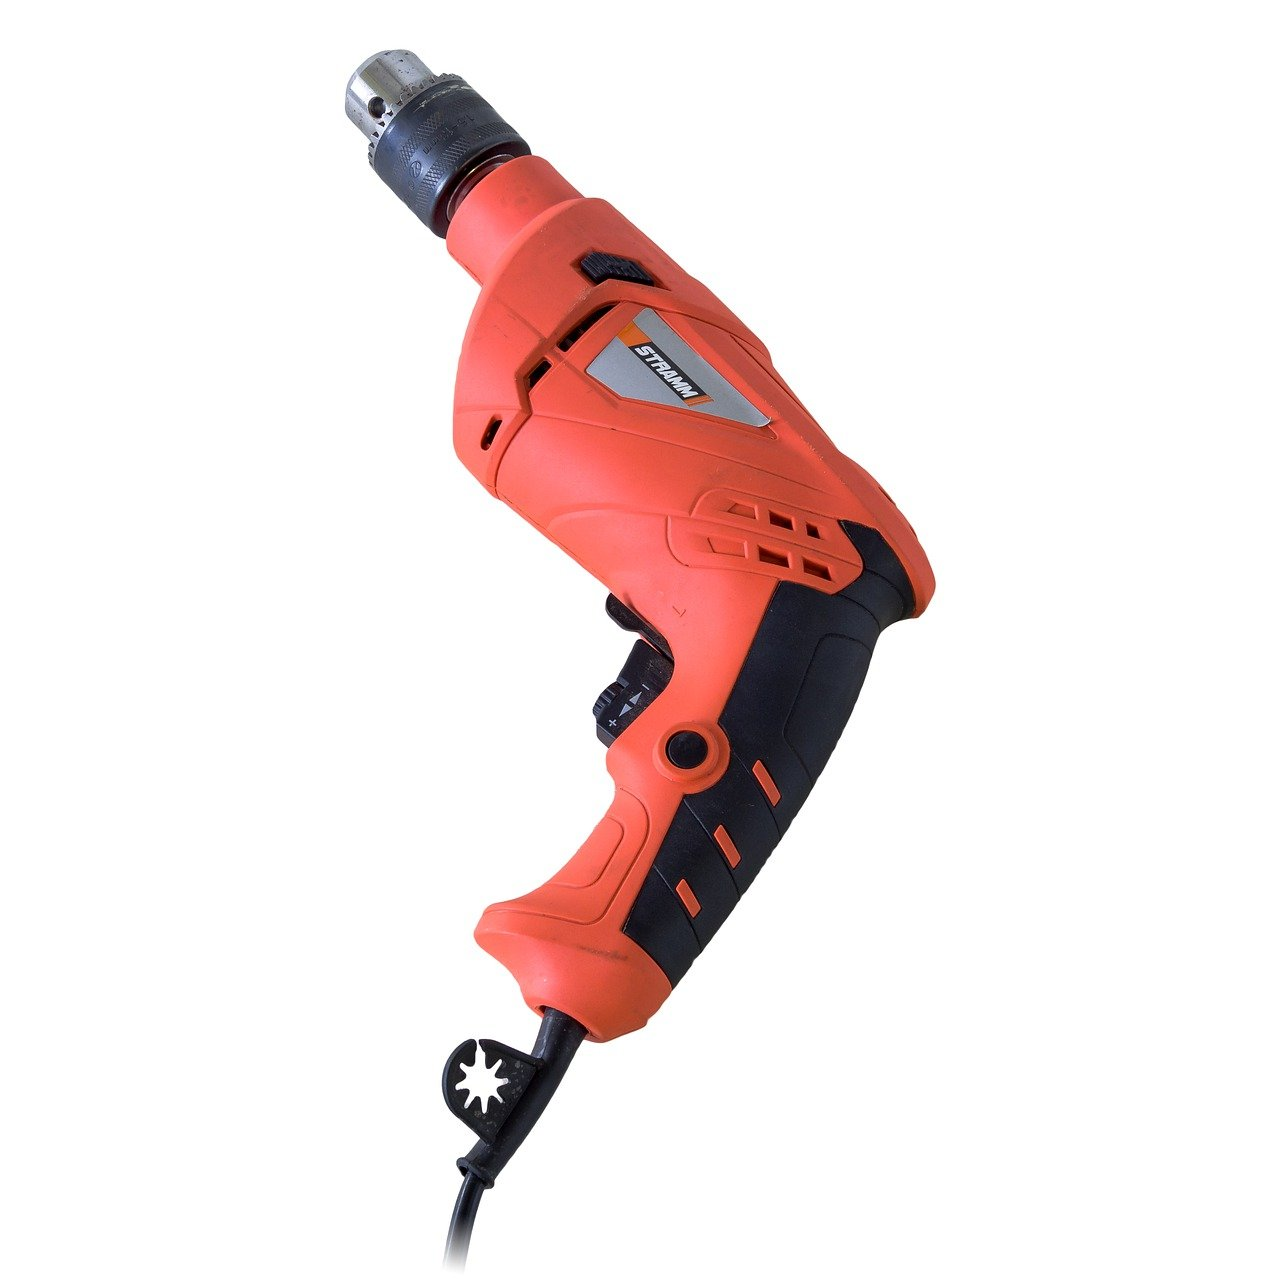 5 best impact drivers of 2021 reviewed